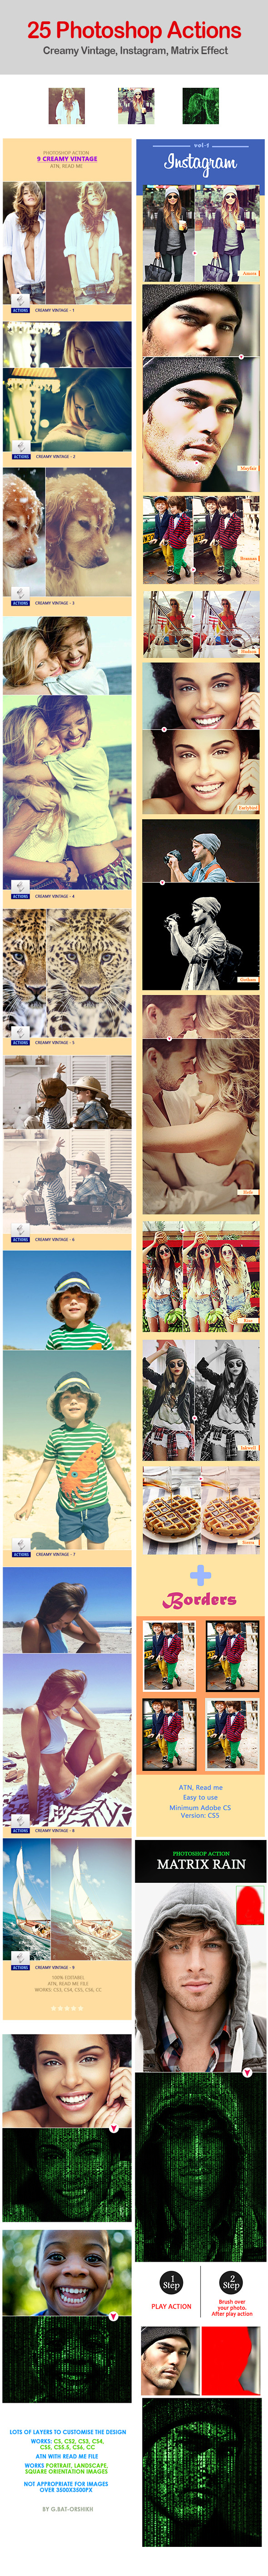 25 Photoshop Actions - Photo Effects Actions